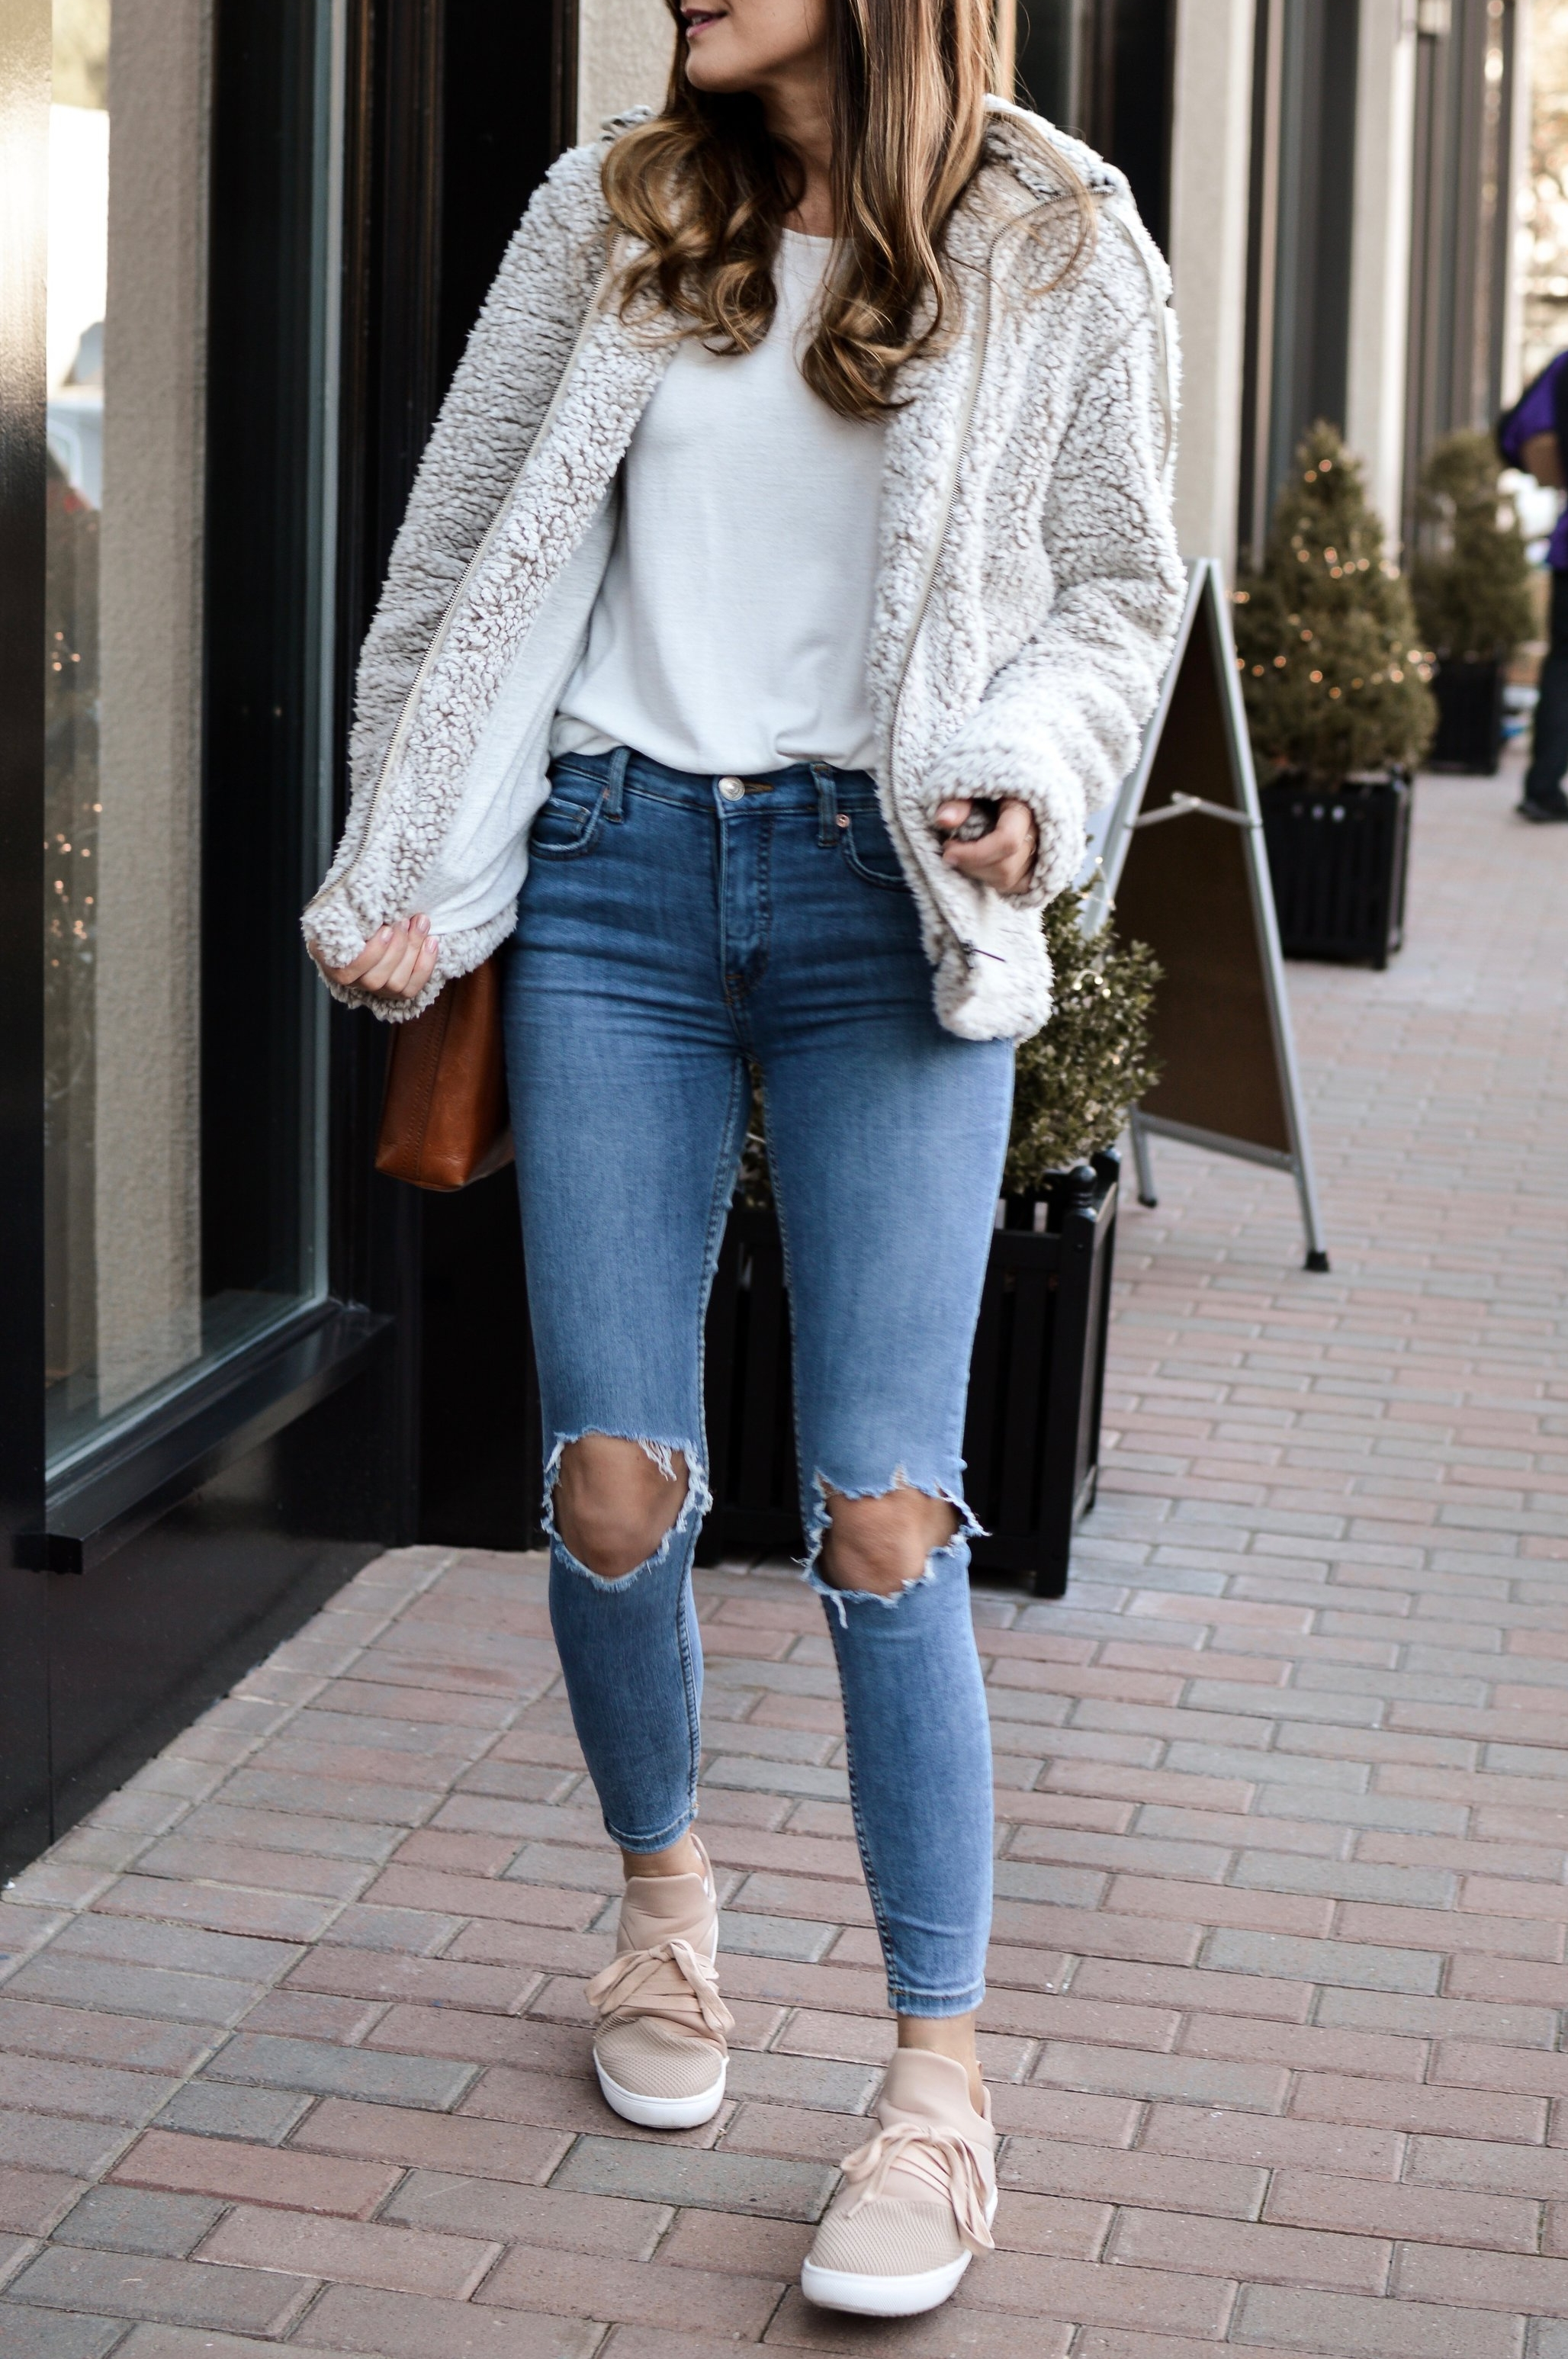 teddy bear coat and sneakers